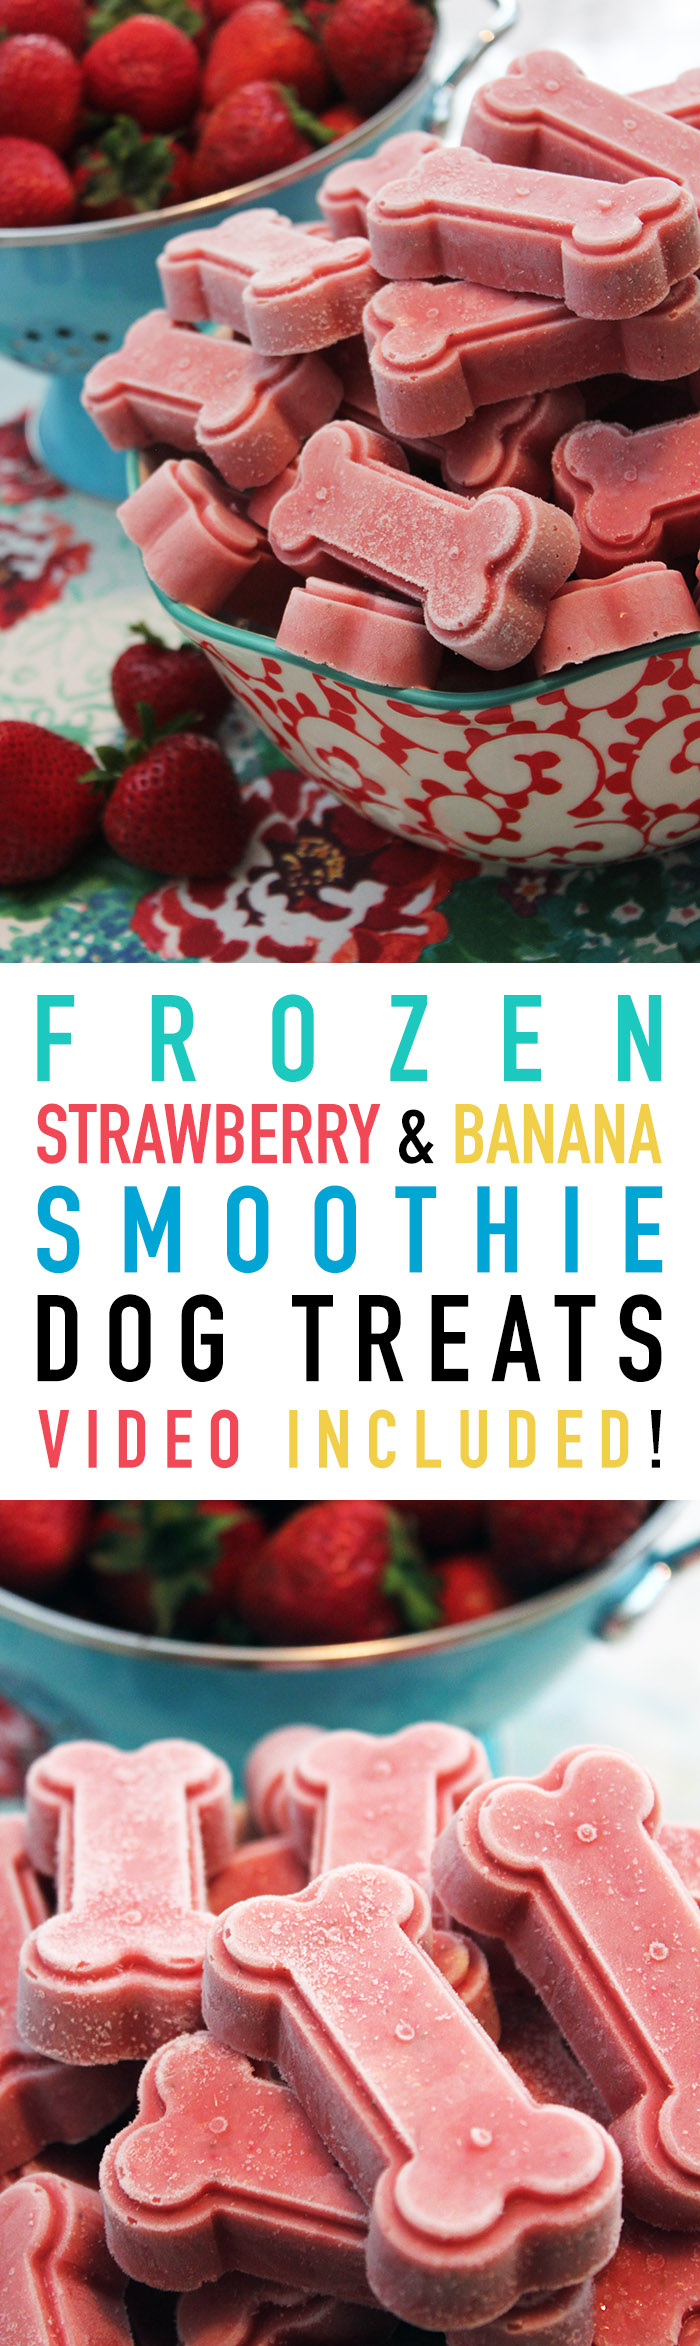 Homemade Frozen Strawberry  Banana Dog Treats from The Cottage Market